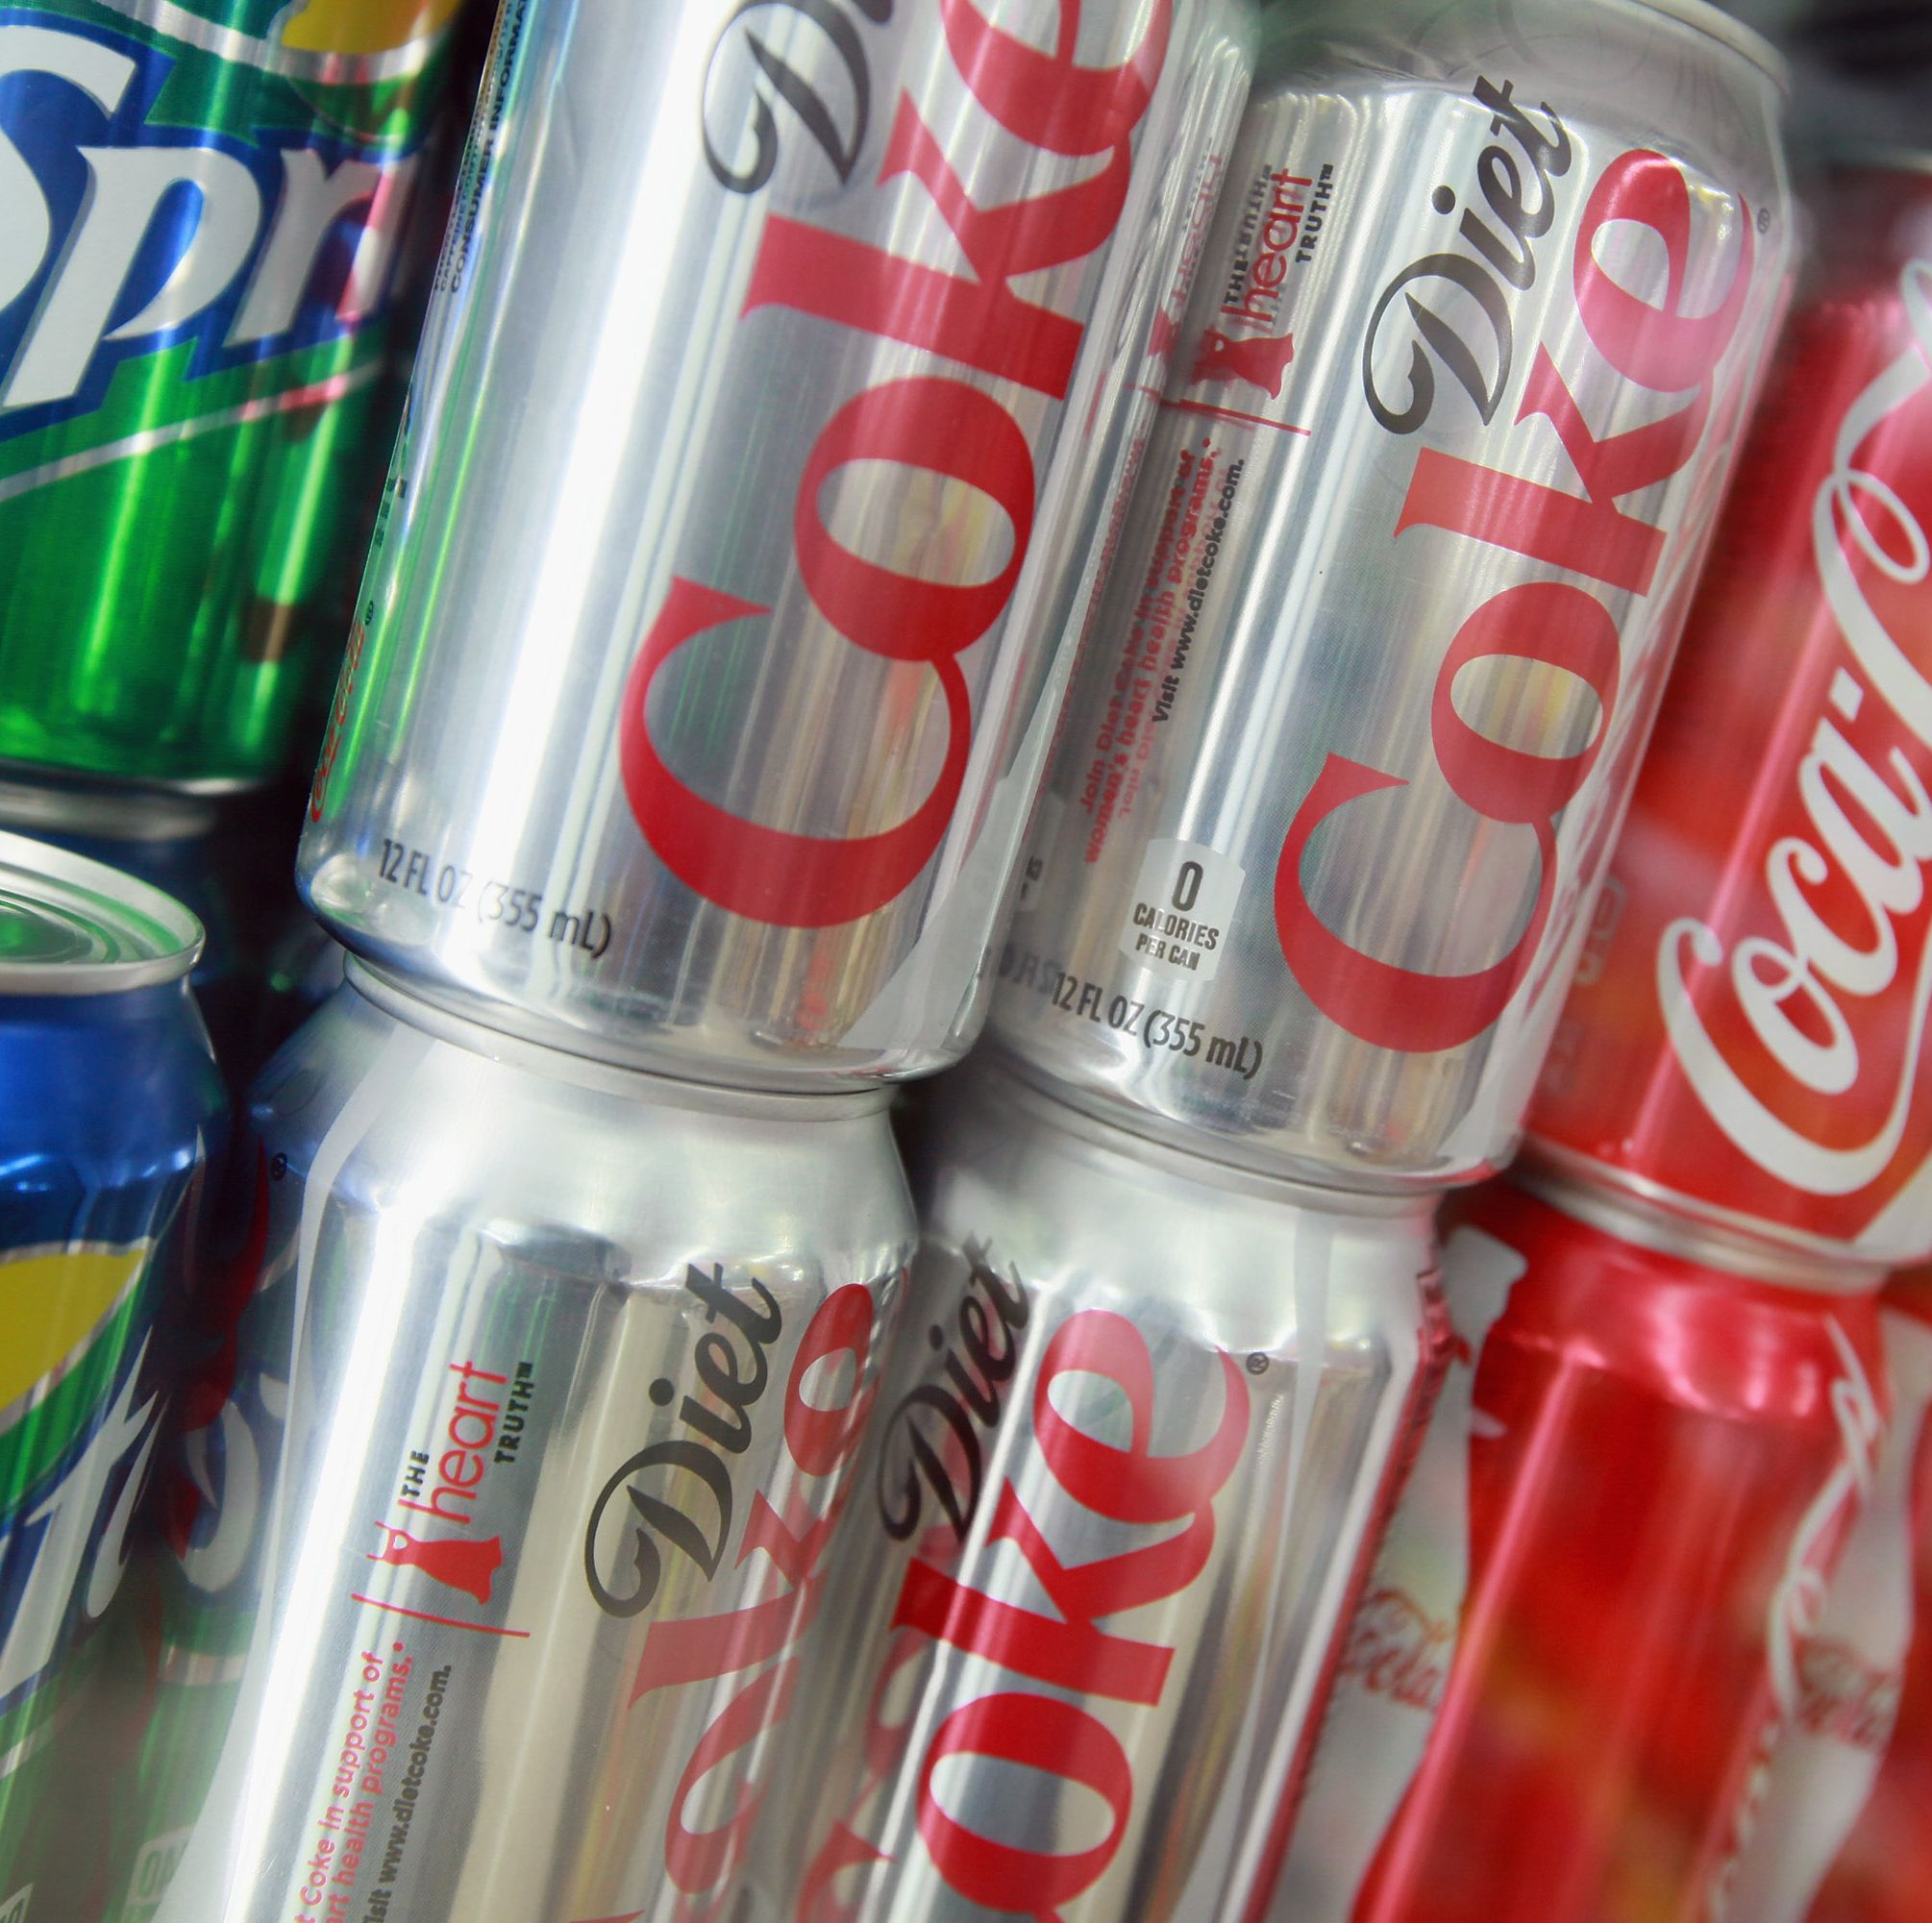 Drinking Too Much Soda Could Cause Colon Cancer, Medical Study Finds